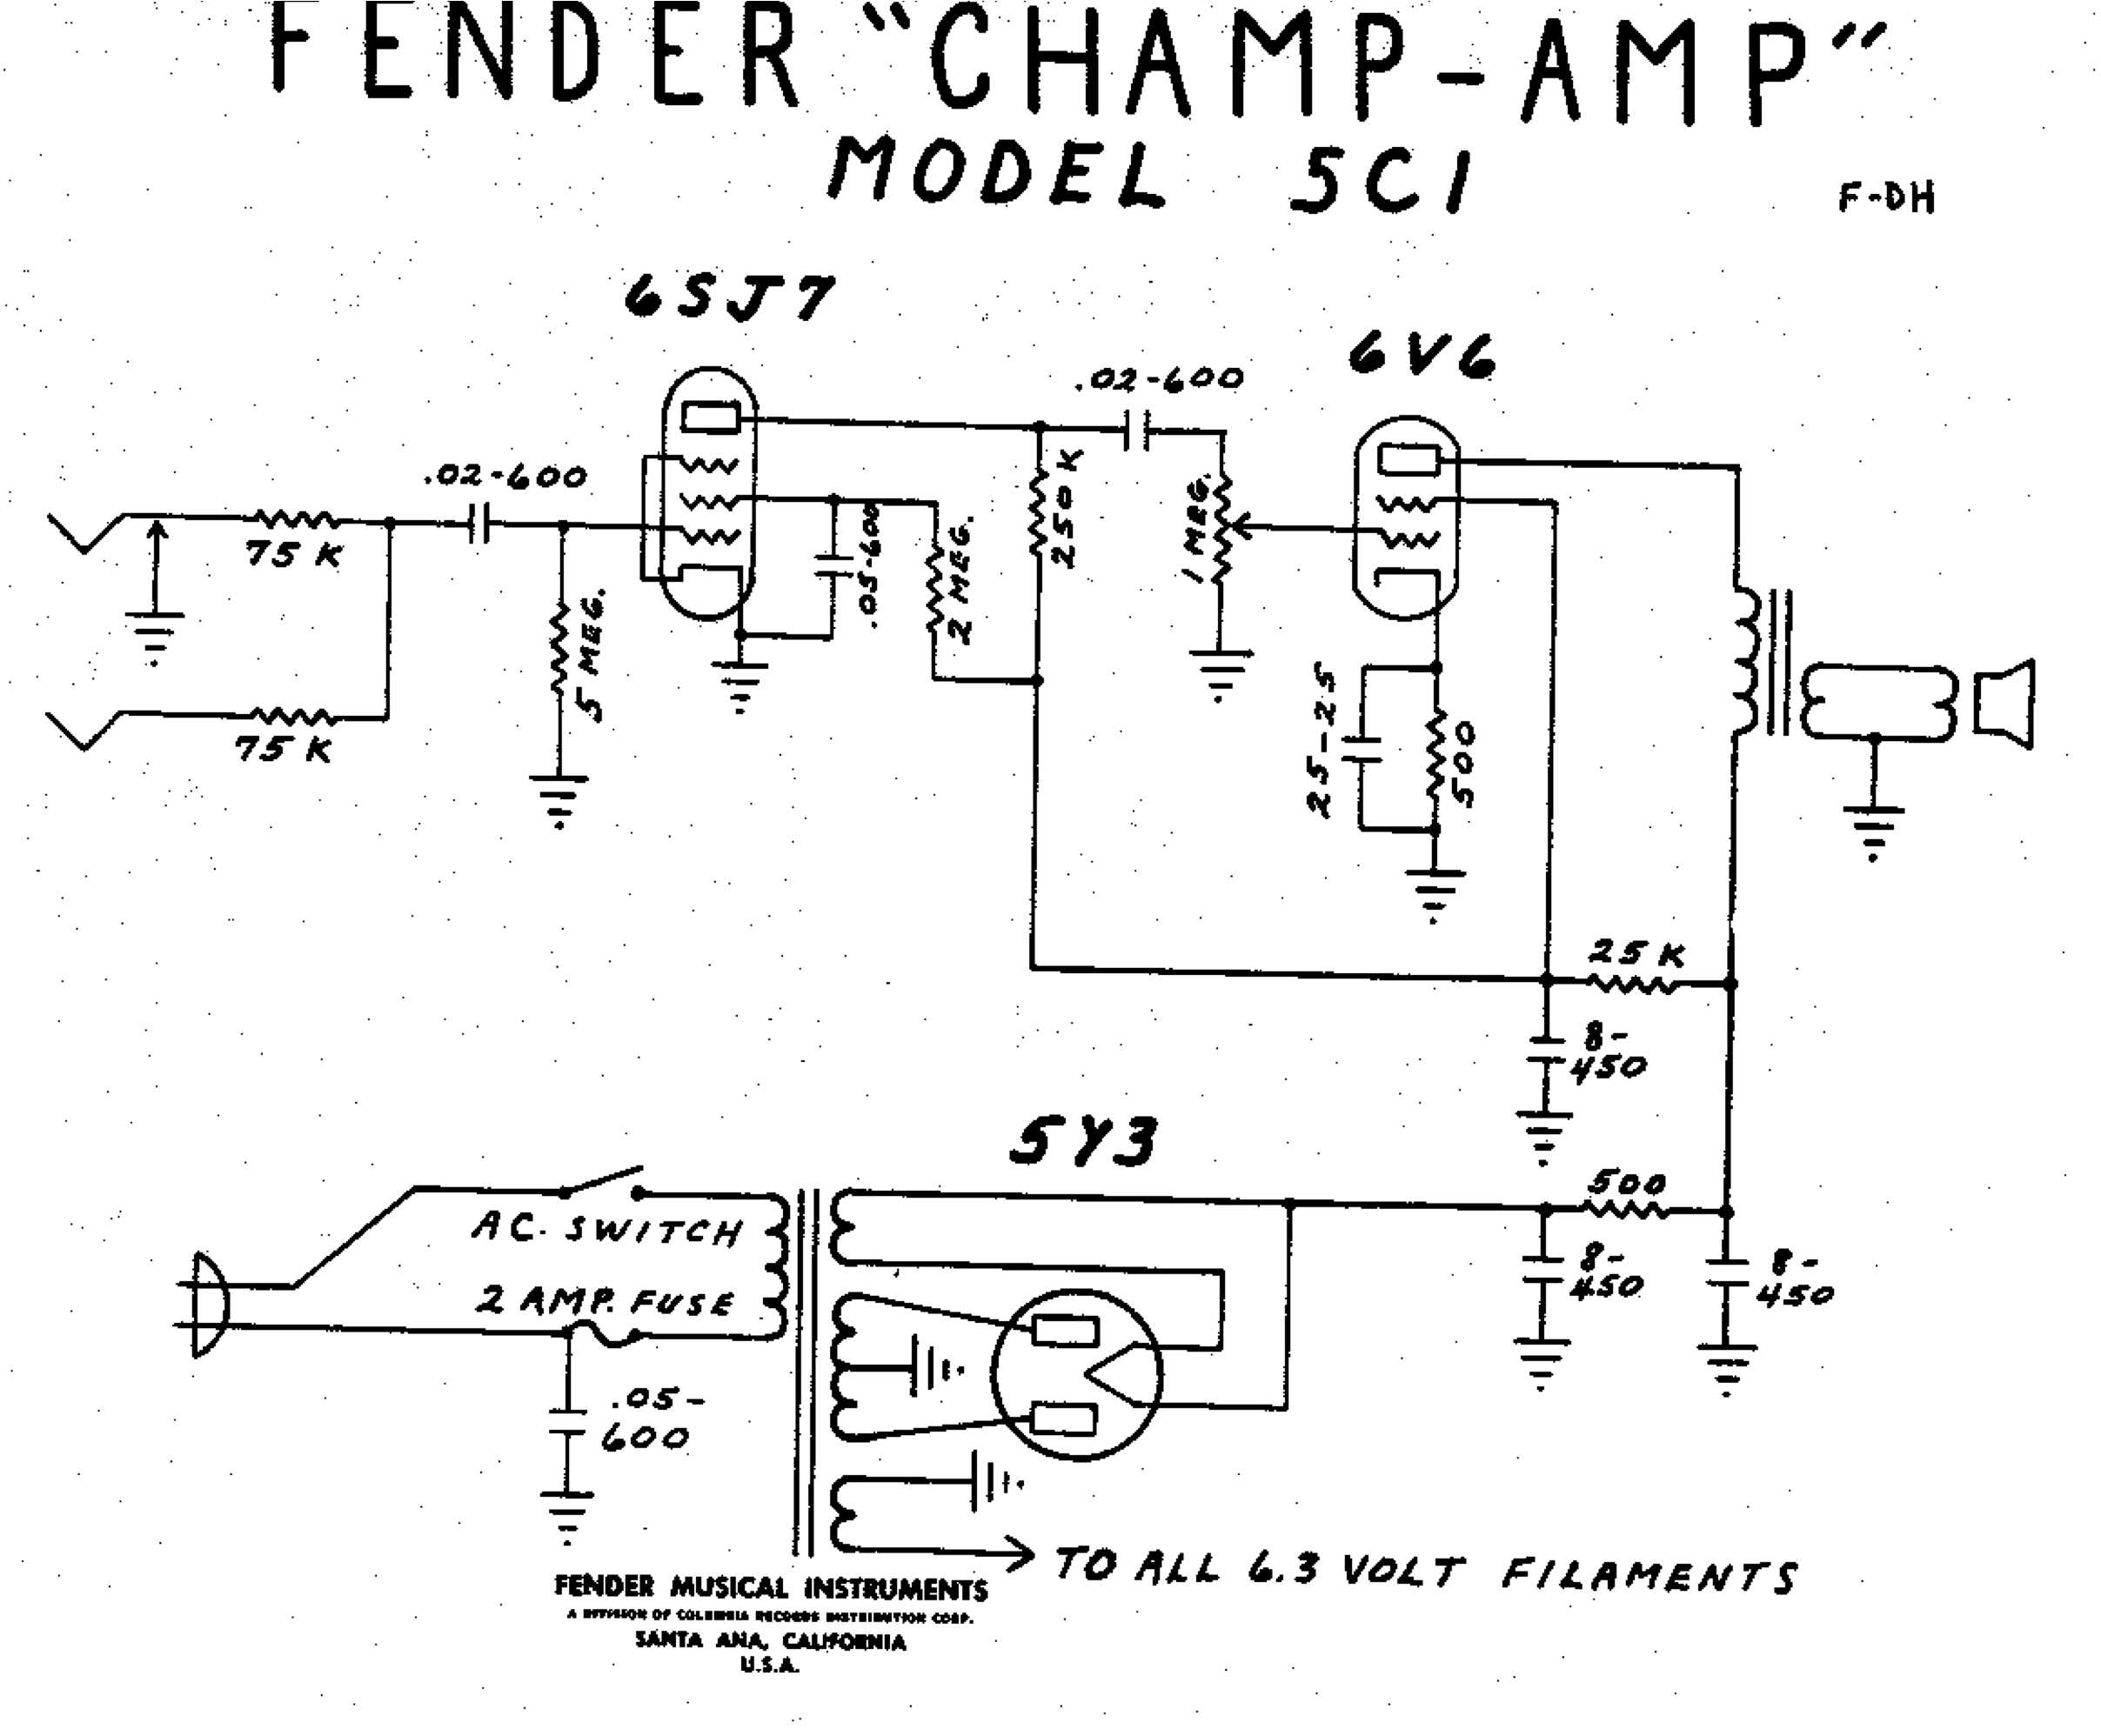 Fender champ 5c1 wiring diagram my fender champ vintage amps wiring diagram 5c1 tweed fender champ cheapraybanclubmaster Gallery